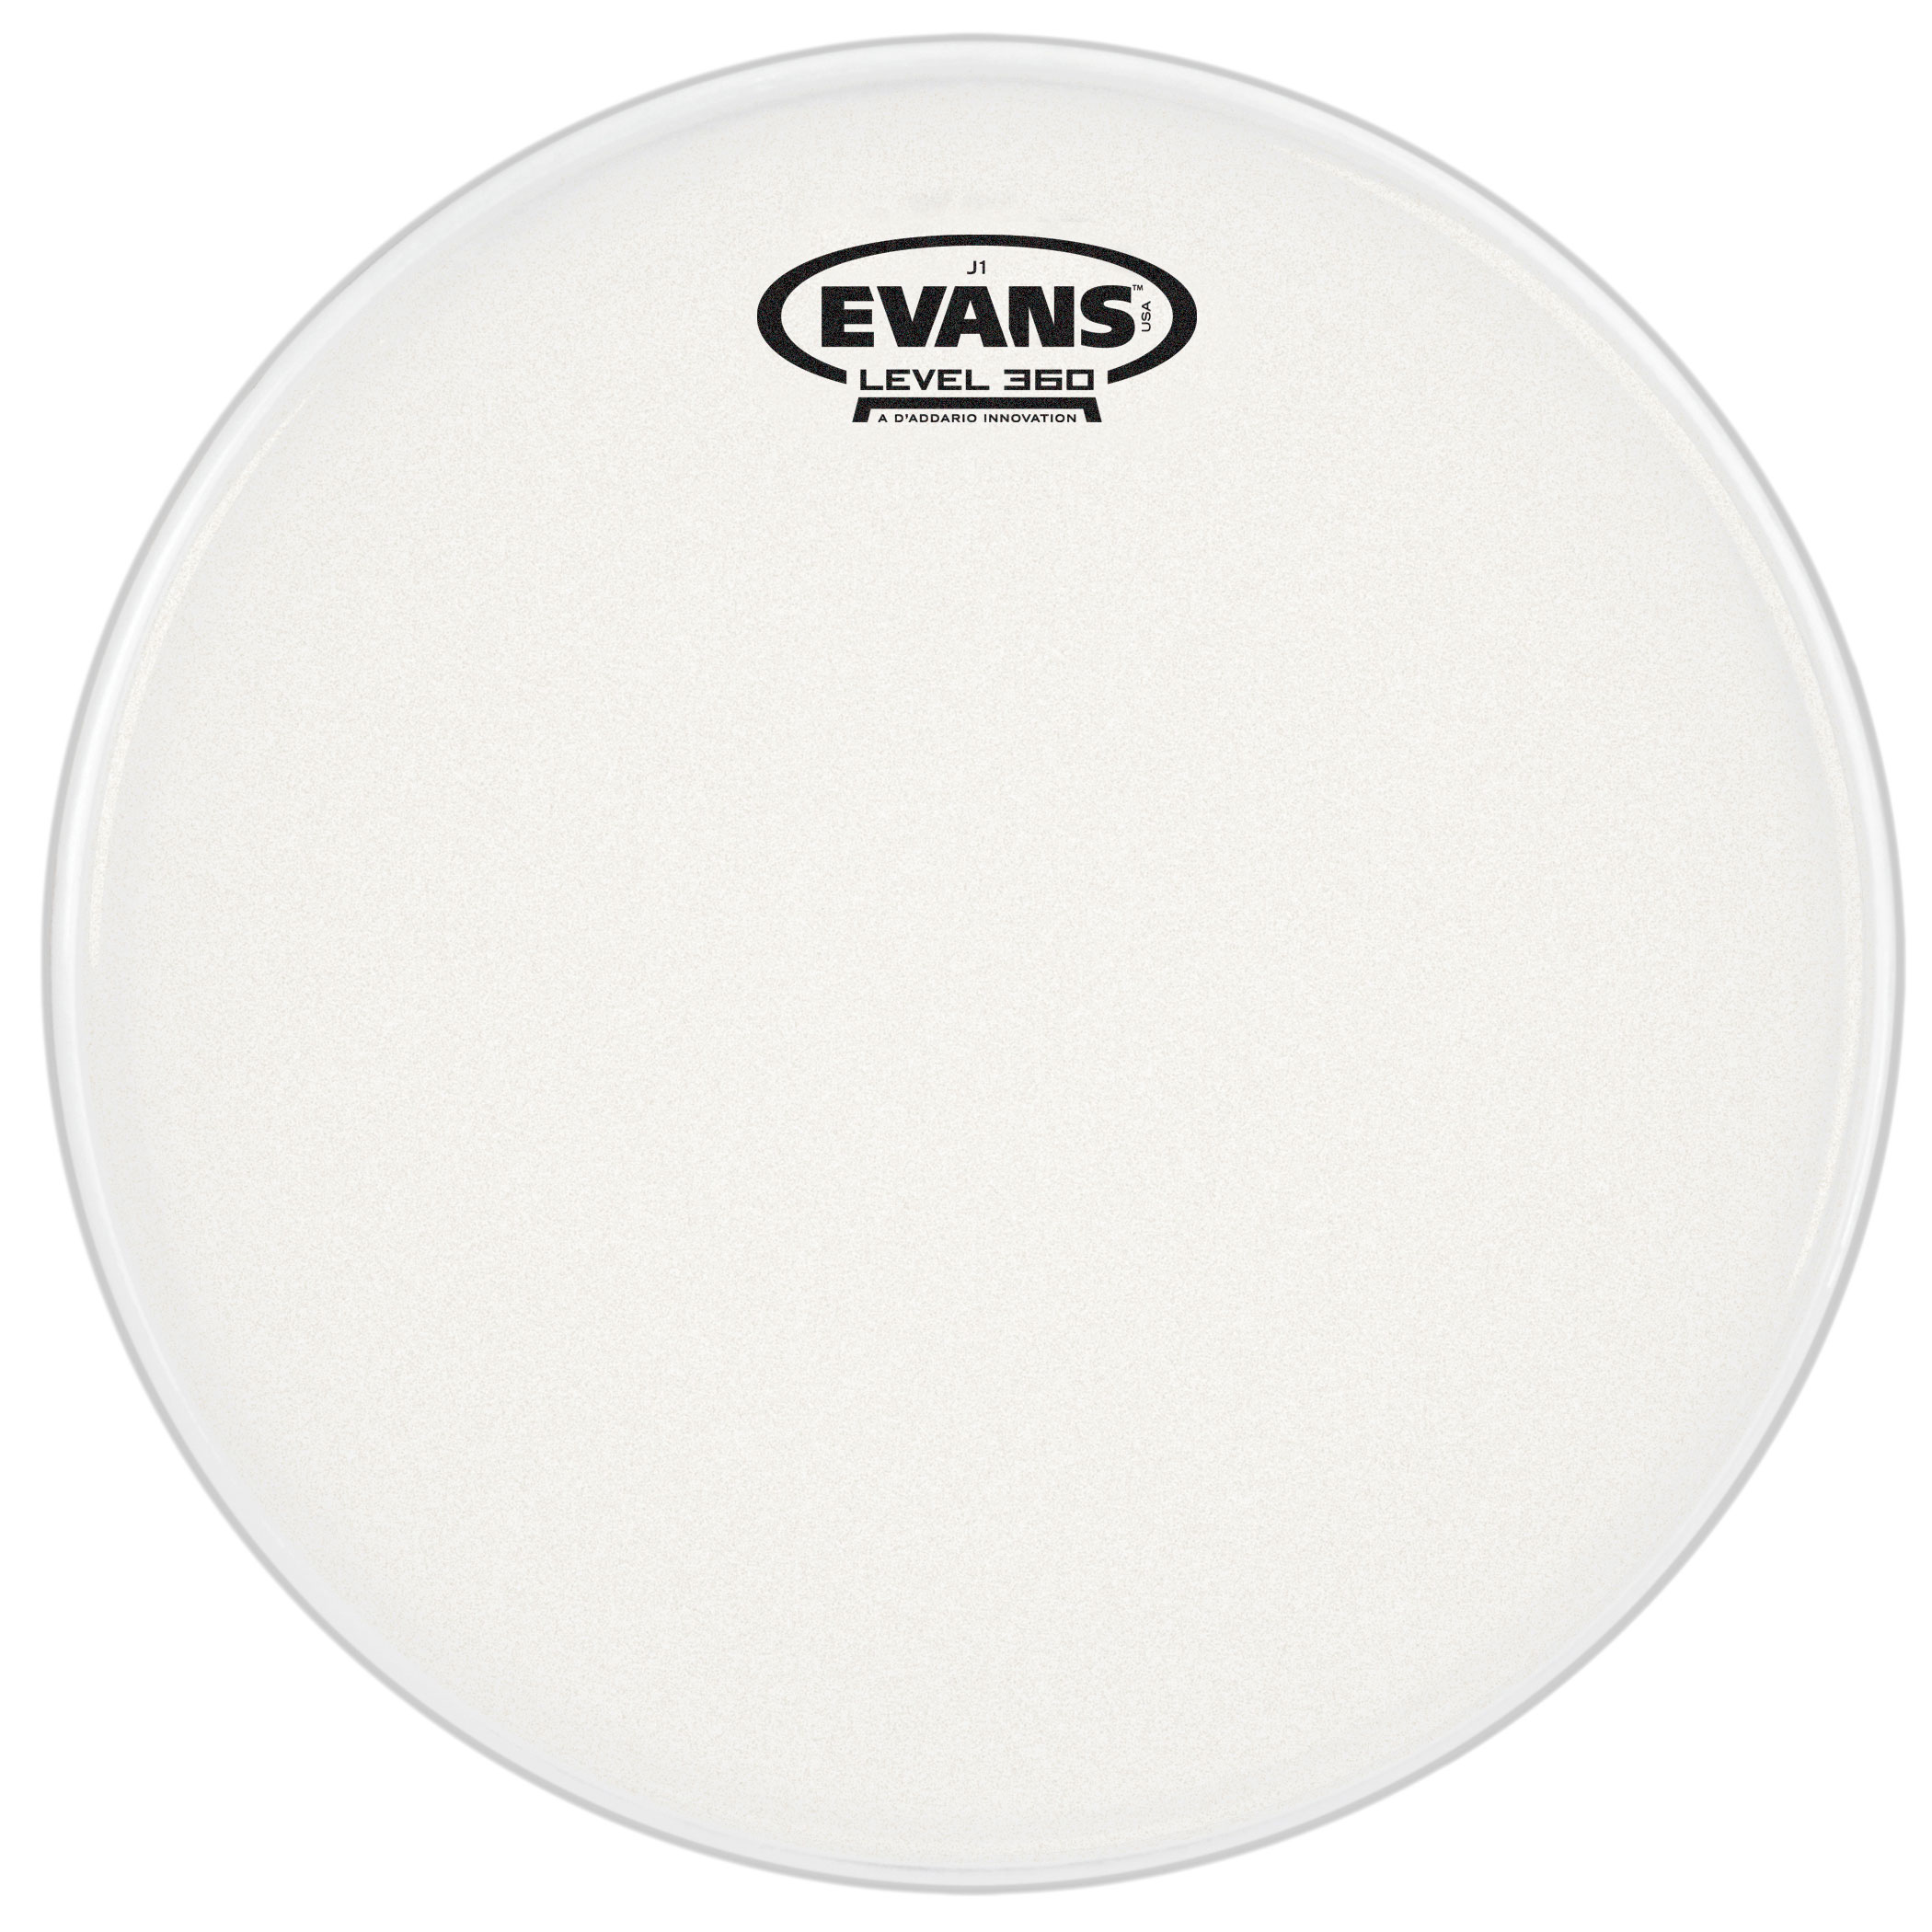 "Evans 10"" J1 Etched Head"